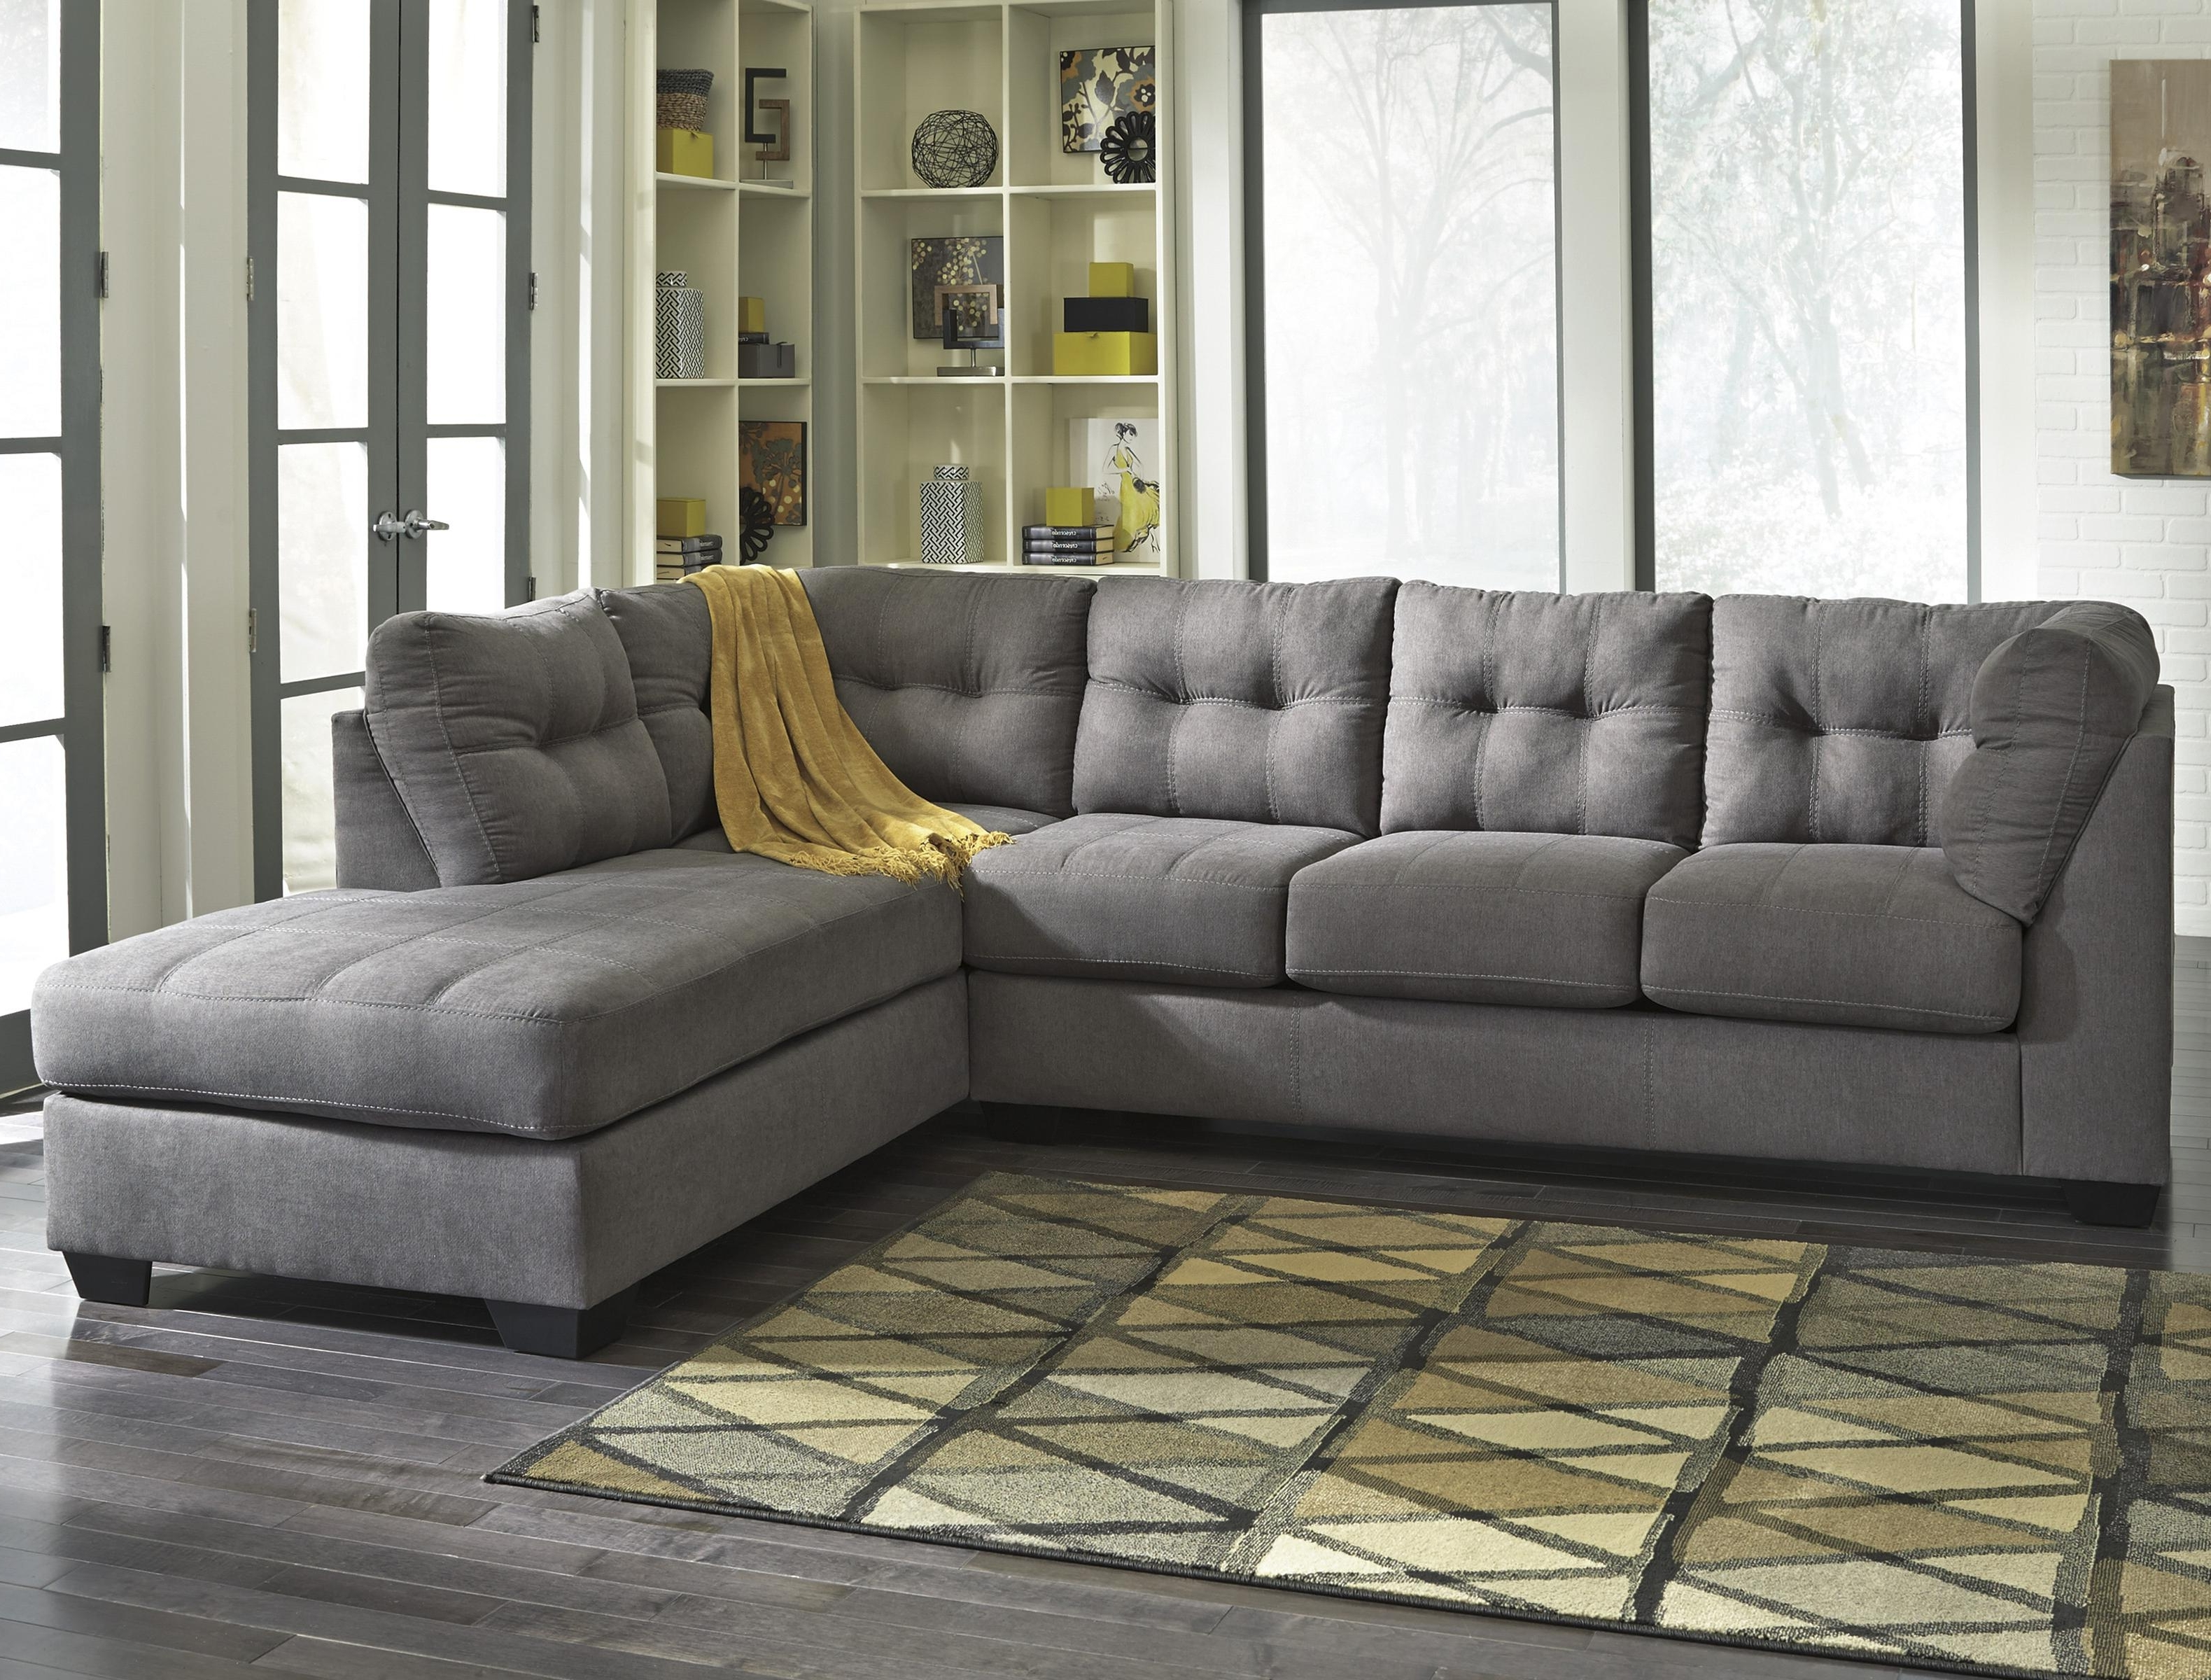 Popular Benchcraftashley Maier – Charcoal 2 Piece Sectional With Right Inside Sectional Sofas At Birmingham Al (View 10 of 15)